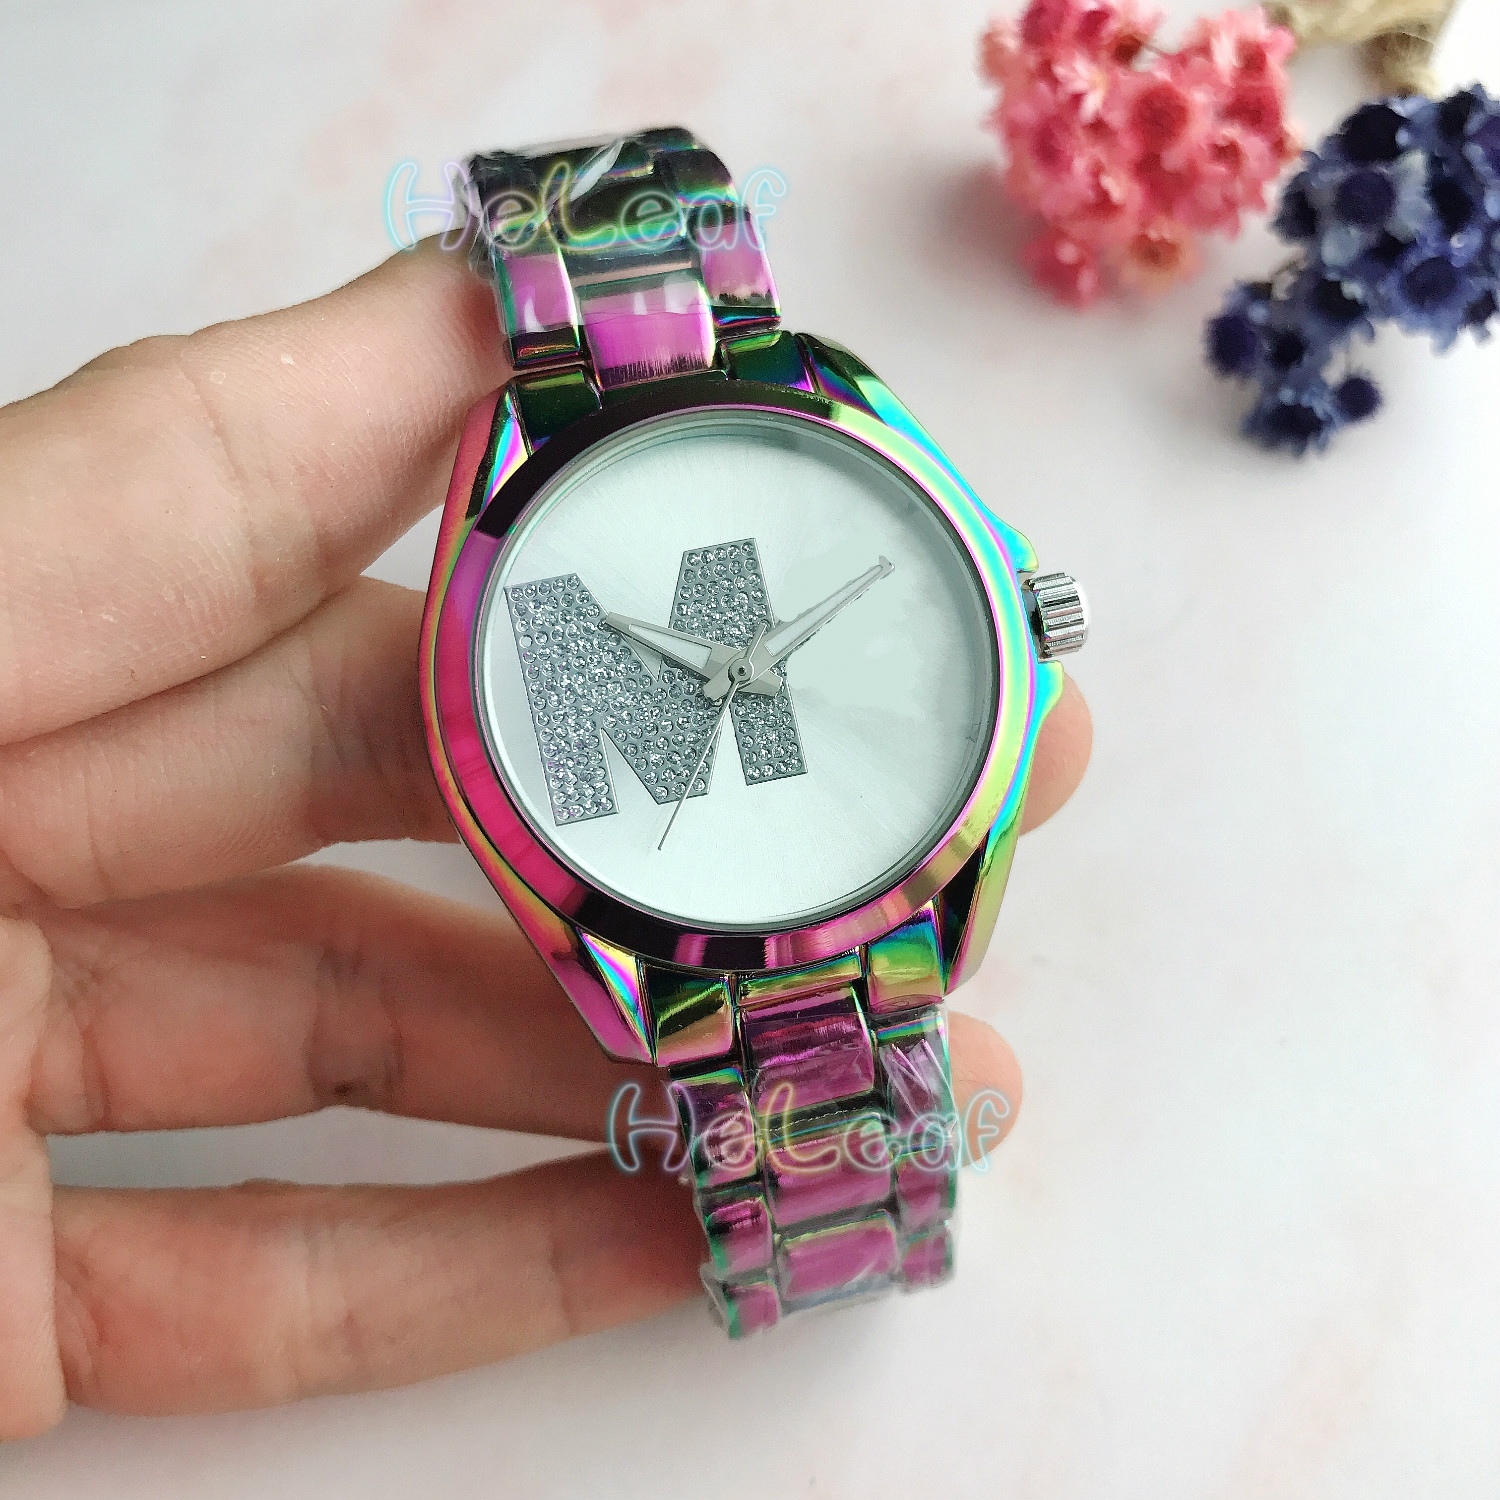 NEW Luxury Fashion Women Watches Colorful Silver Gold Round Stainless Steel Band Quartz Watch Female Clock Montre Femme Relogio